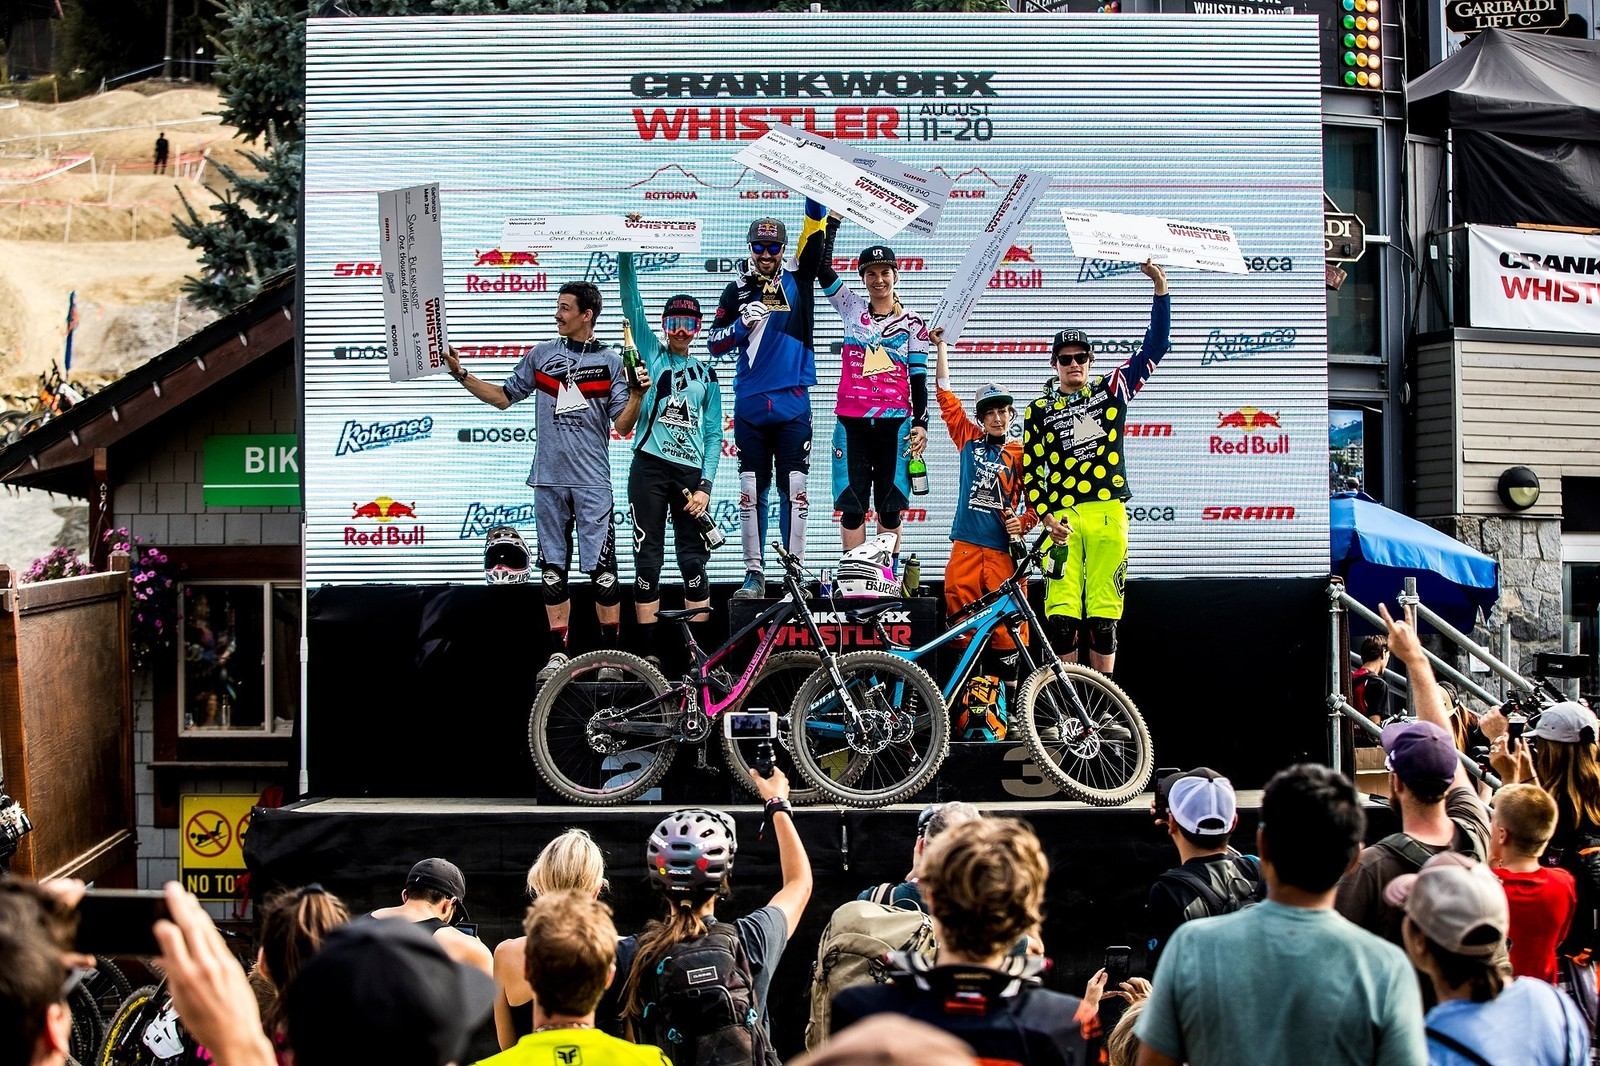 RESULTS: Garbanzo DH